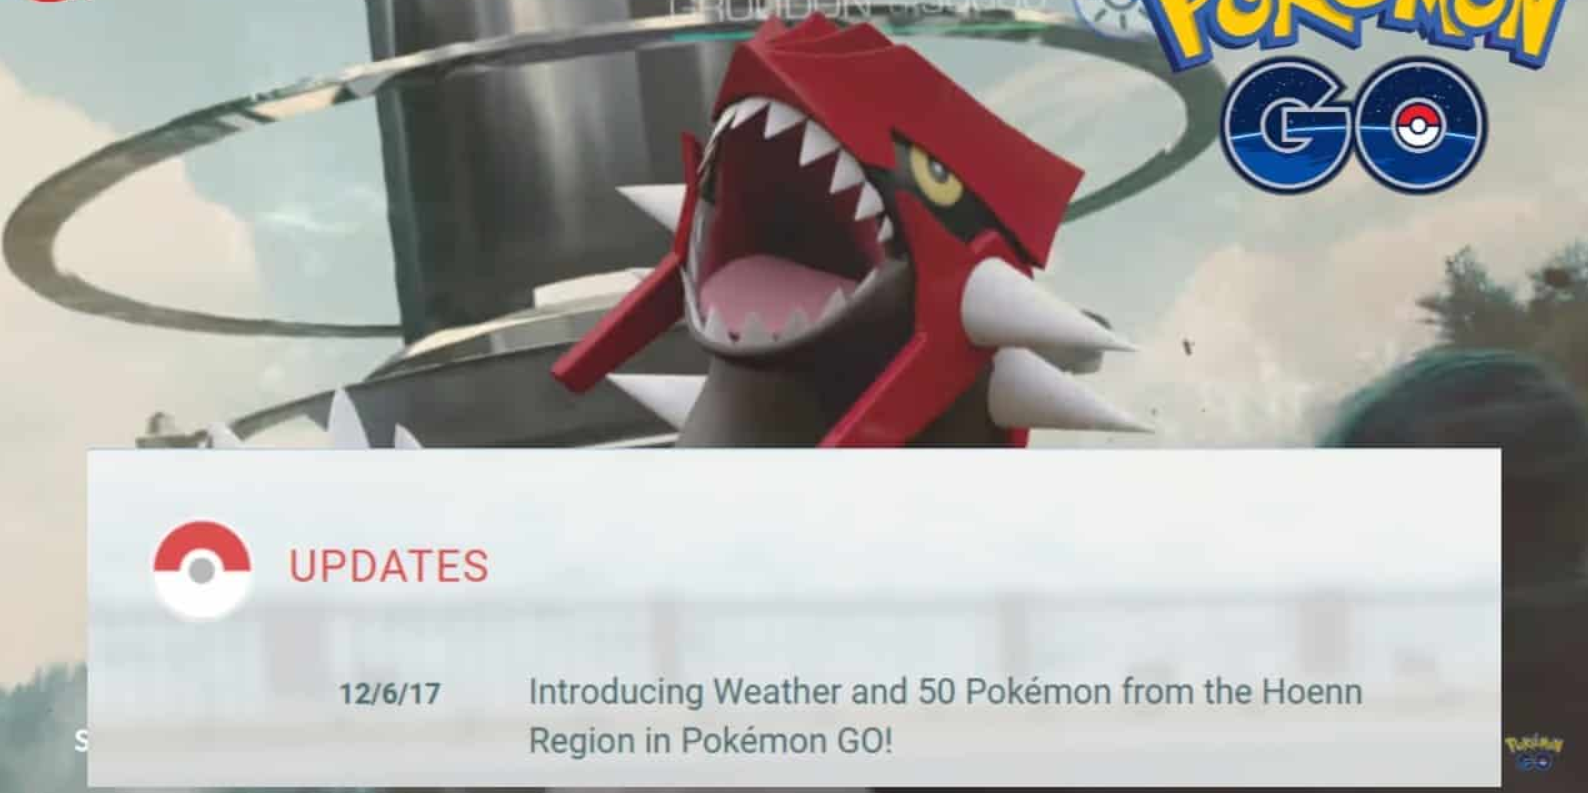 Pokemon Go: Latest update introduces 50 new Pokémon from the Hoenn Region and weather effects